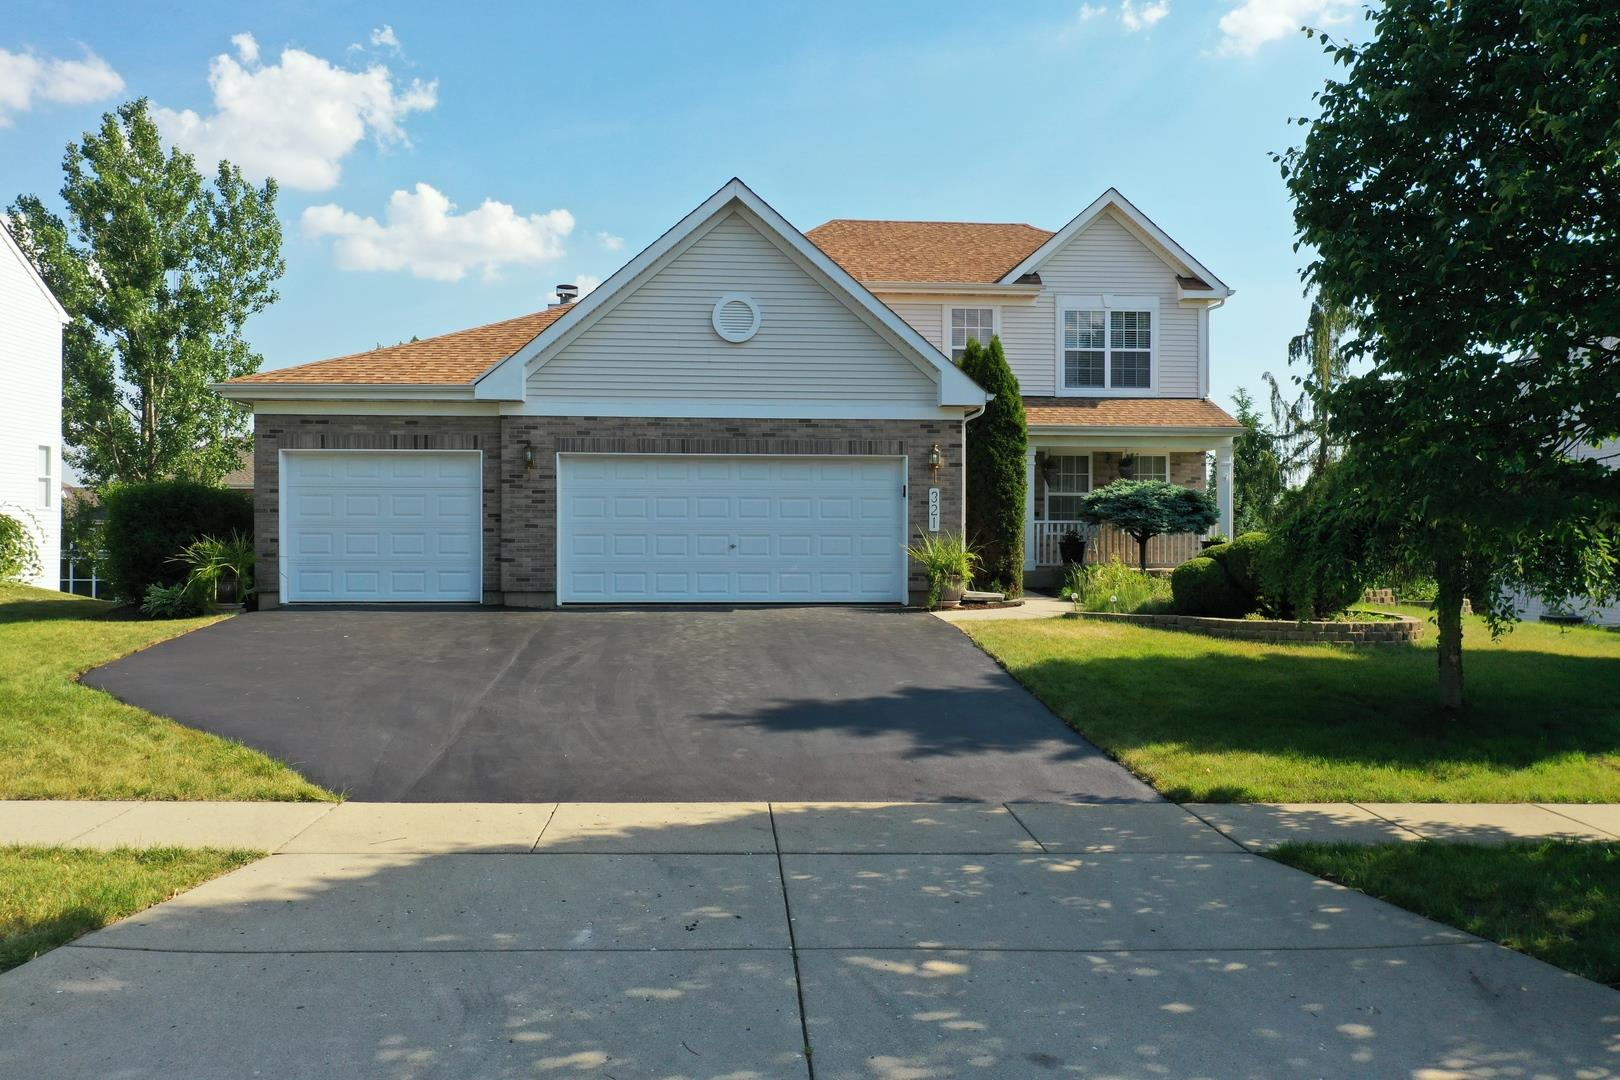 321 Diamond Back Way, Algonquin, IL 60102 - #: 10756503